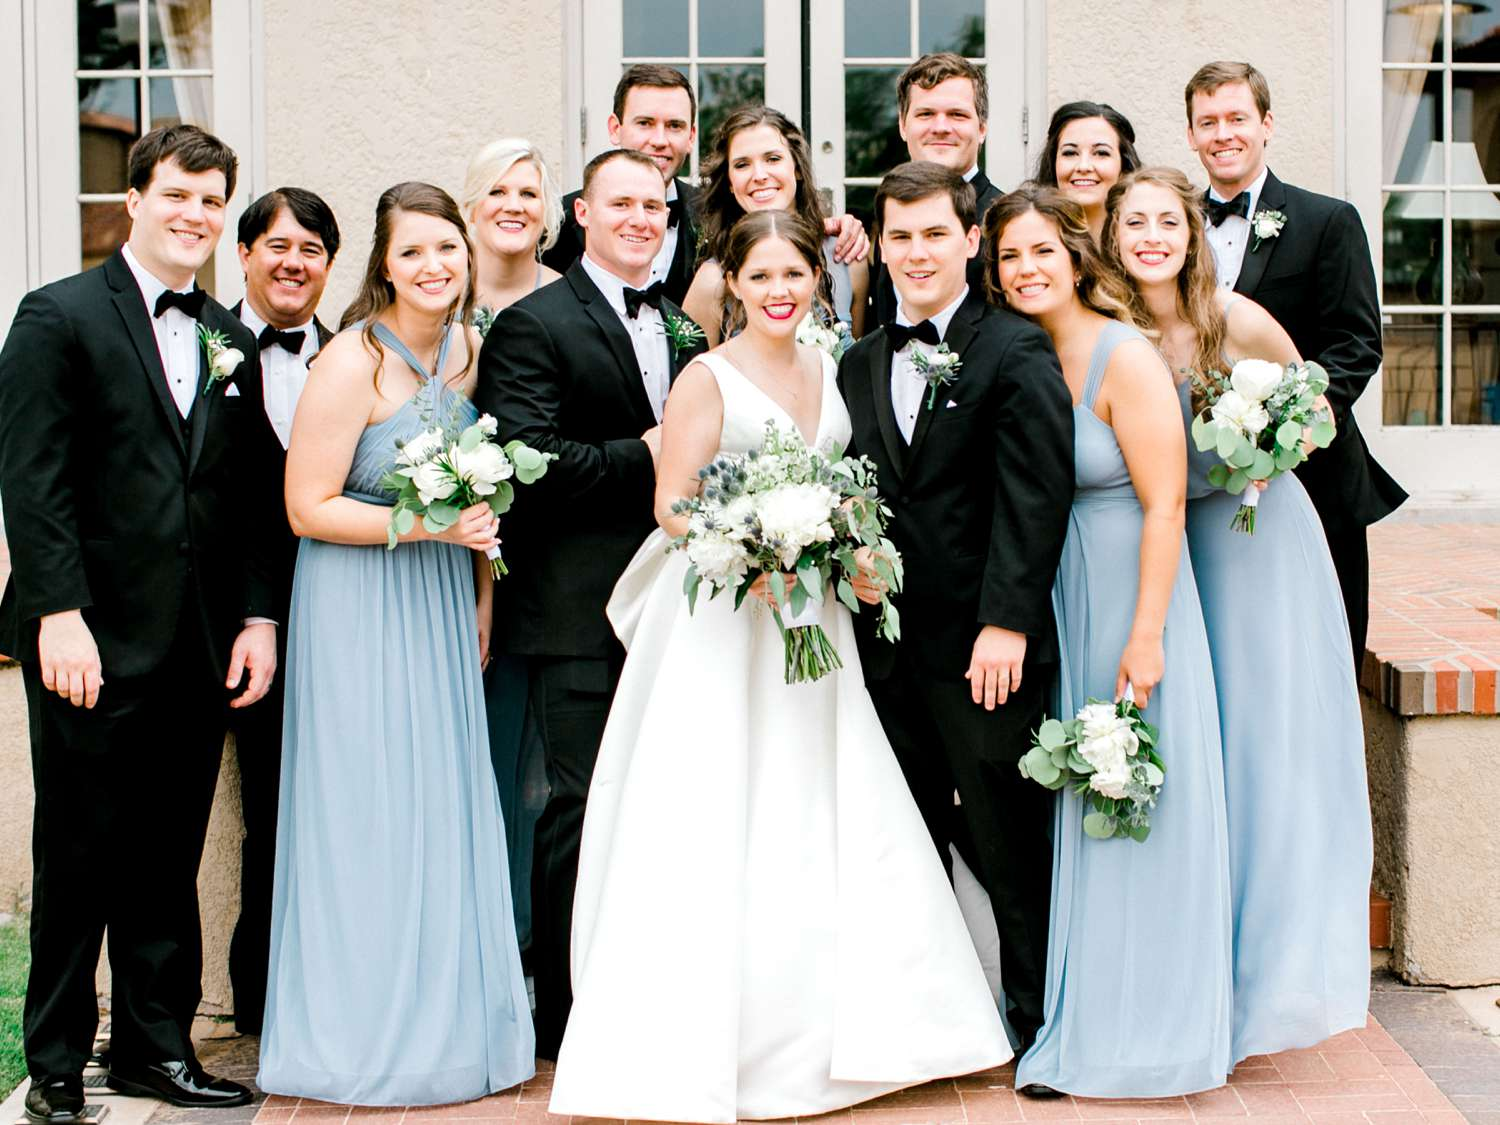 HANNAH+CRAIG+CHILDS+TEXAS+TECH+WEDDING+ALLEEJ+LUBBOCK+PHOTOGRAPHER_0109.jpg